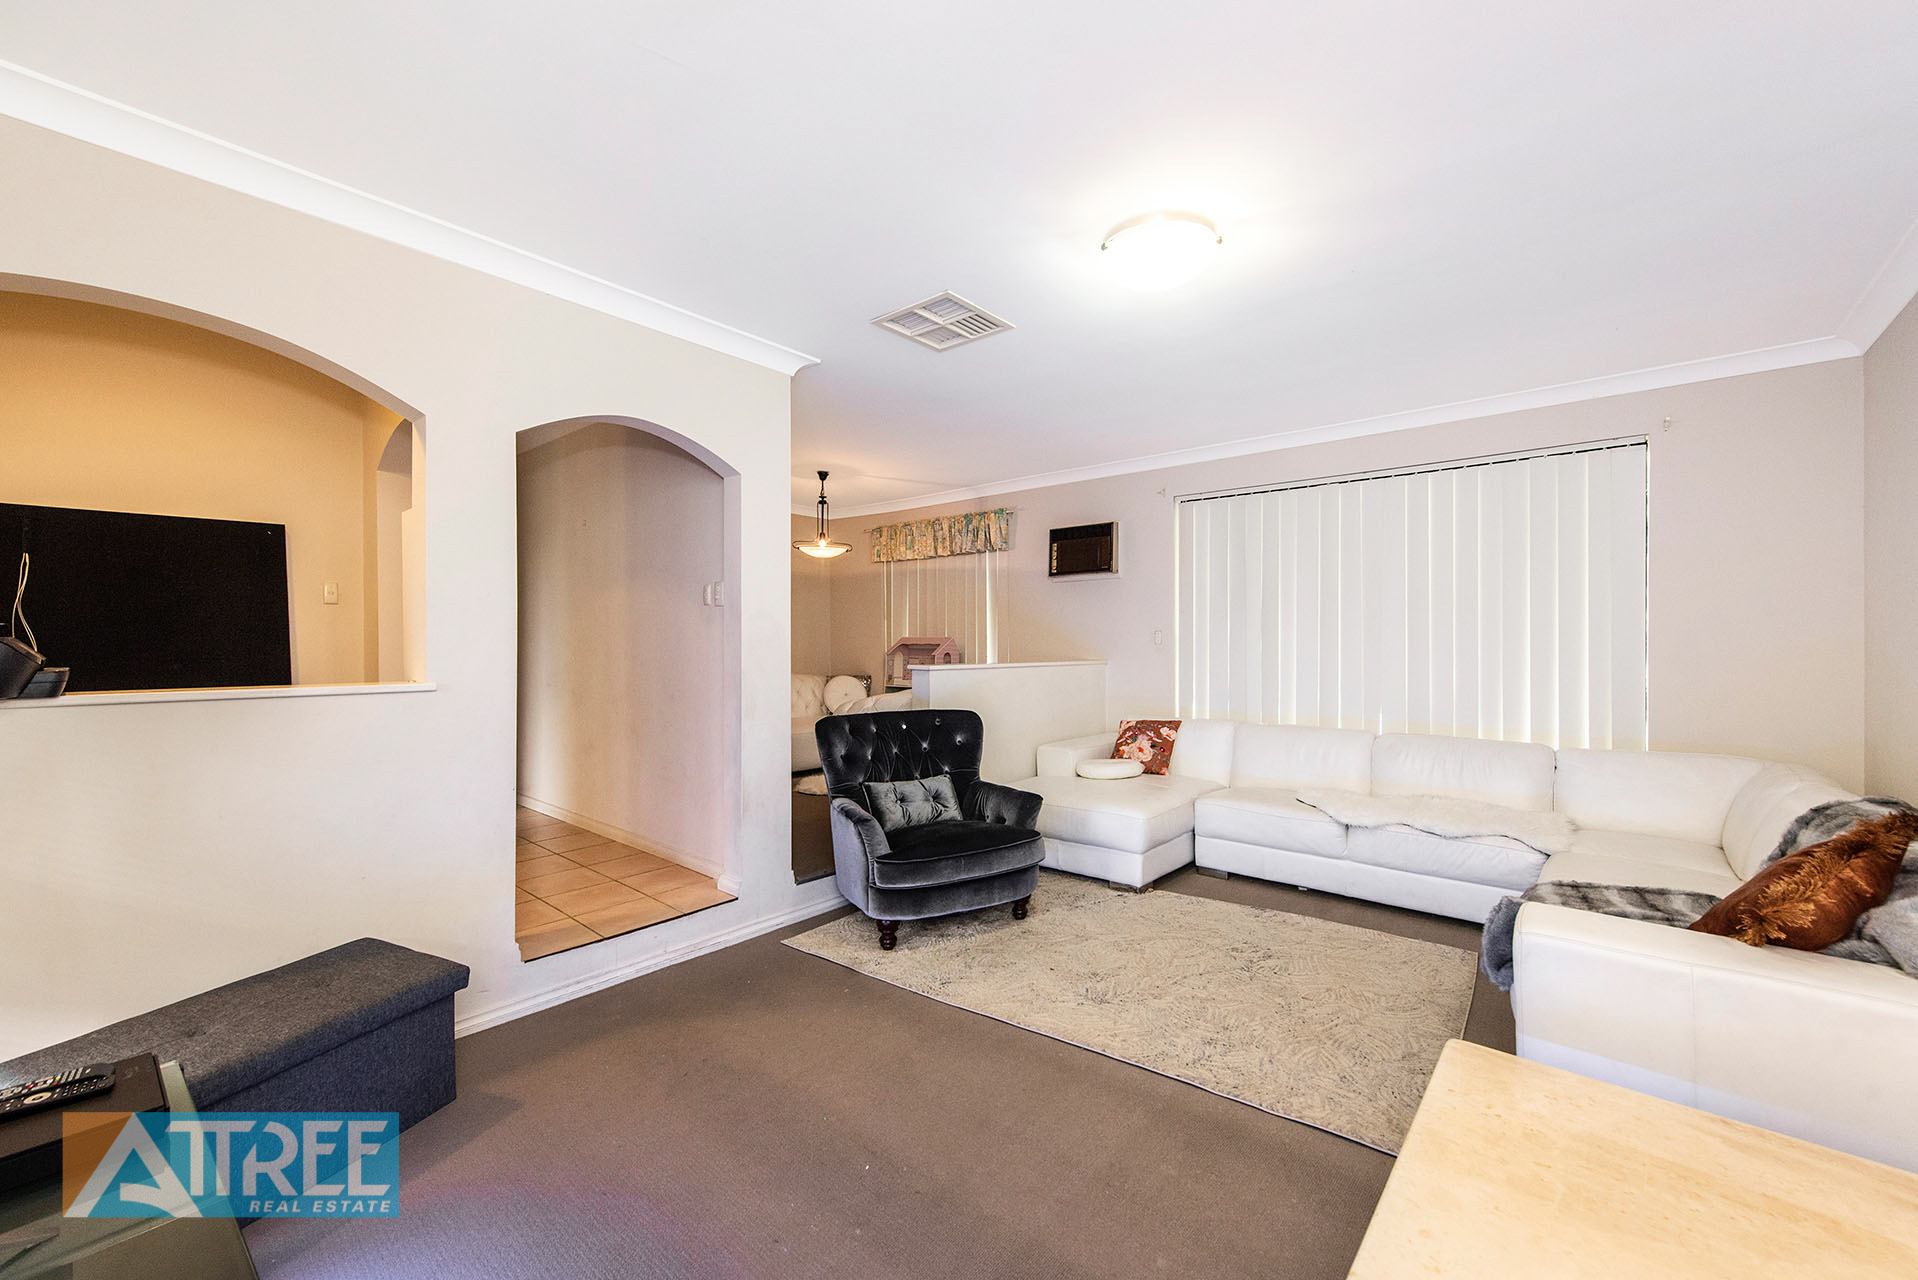 Property for sale in WILLETTON, 7 Wynyard Way : Attree Real Estate